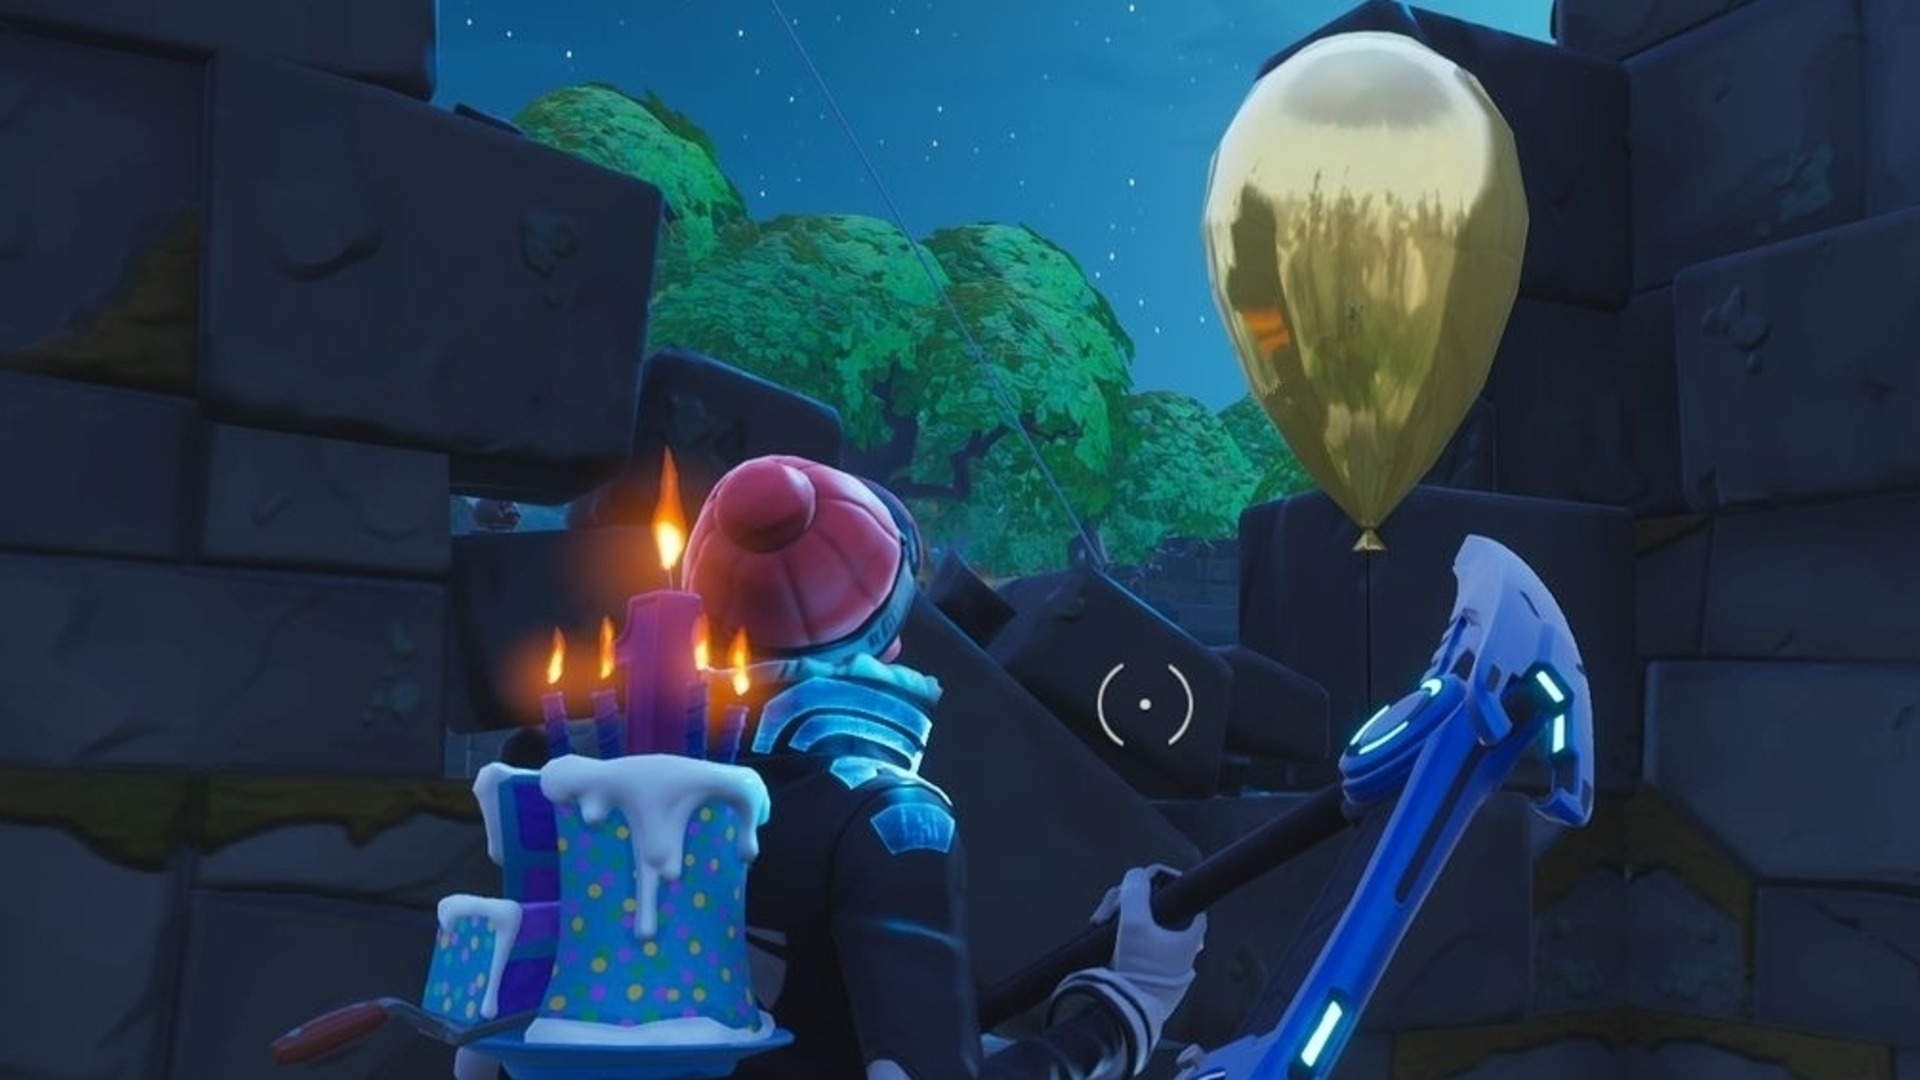 ... Fortnite Balloon Locations Where To Pop Golden Balloons Eurogamer Net  Source · Knight Watch Of Fortnite HD Wallpaper Download Apple IPhone 7 Plus  ...